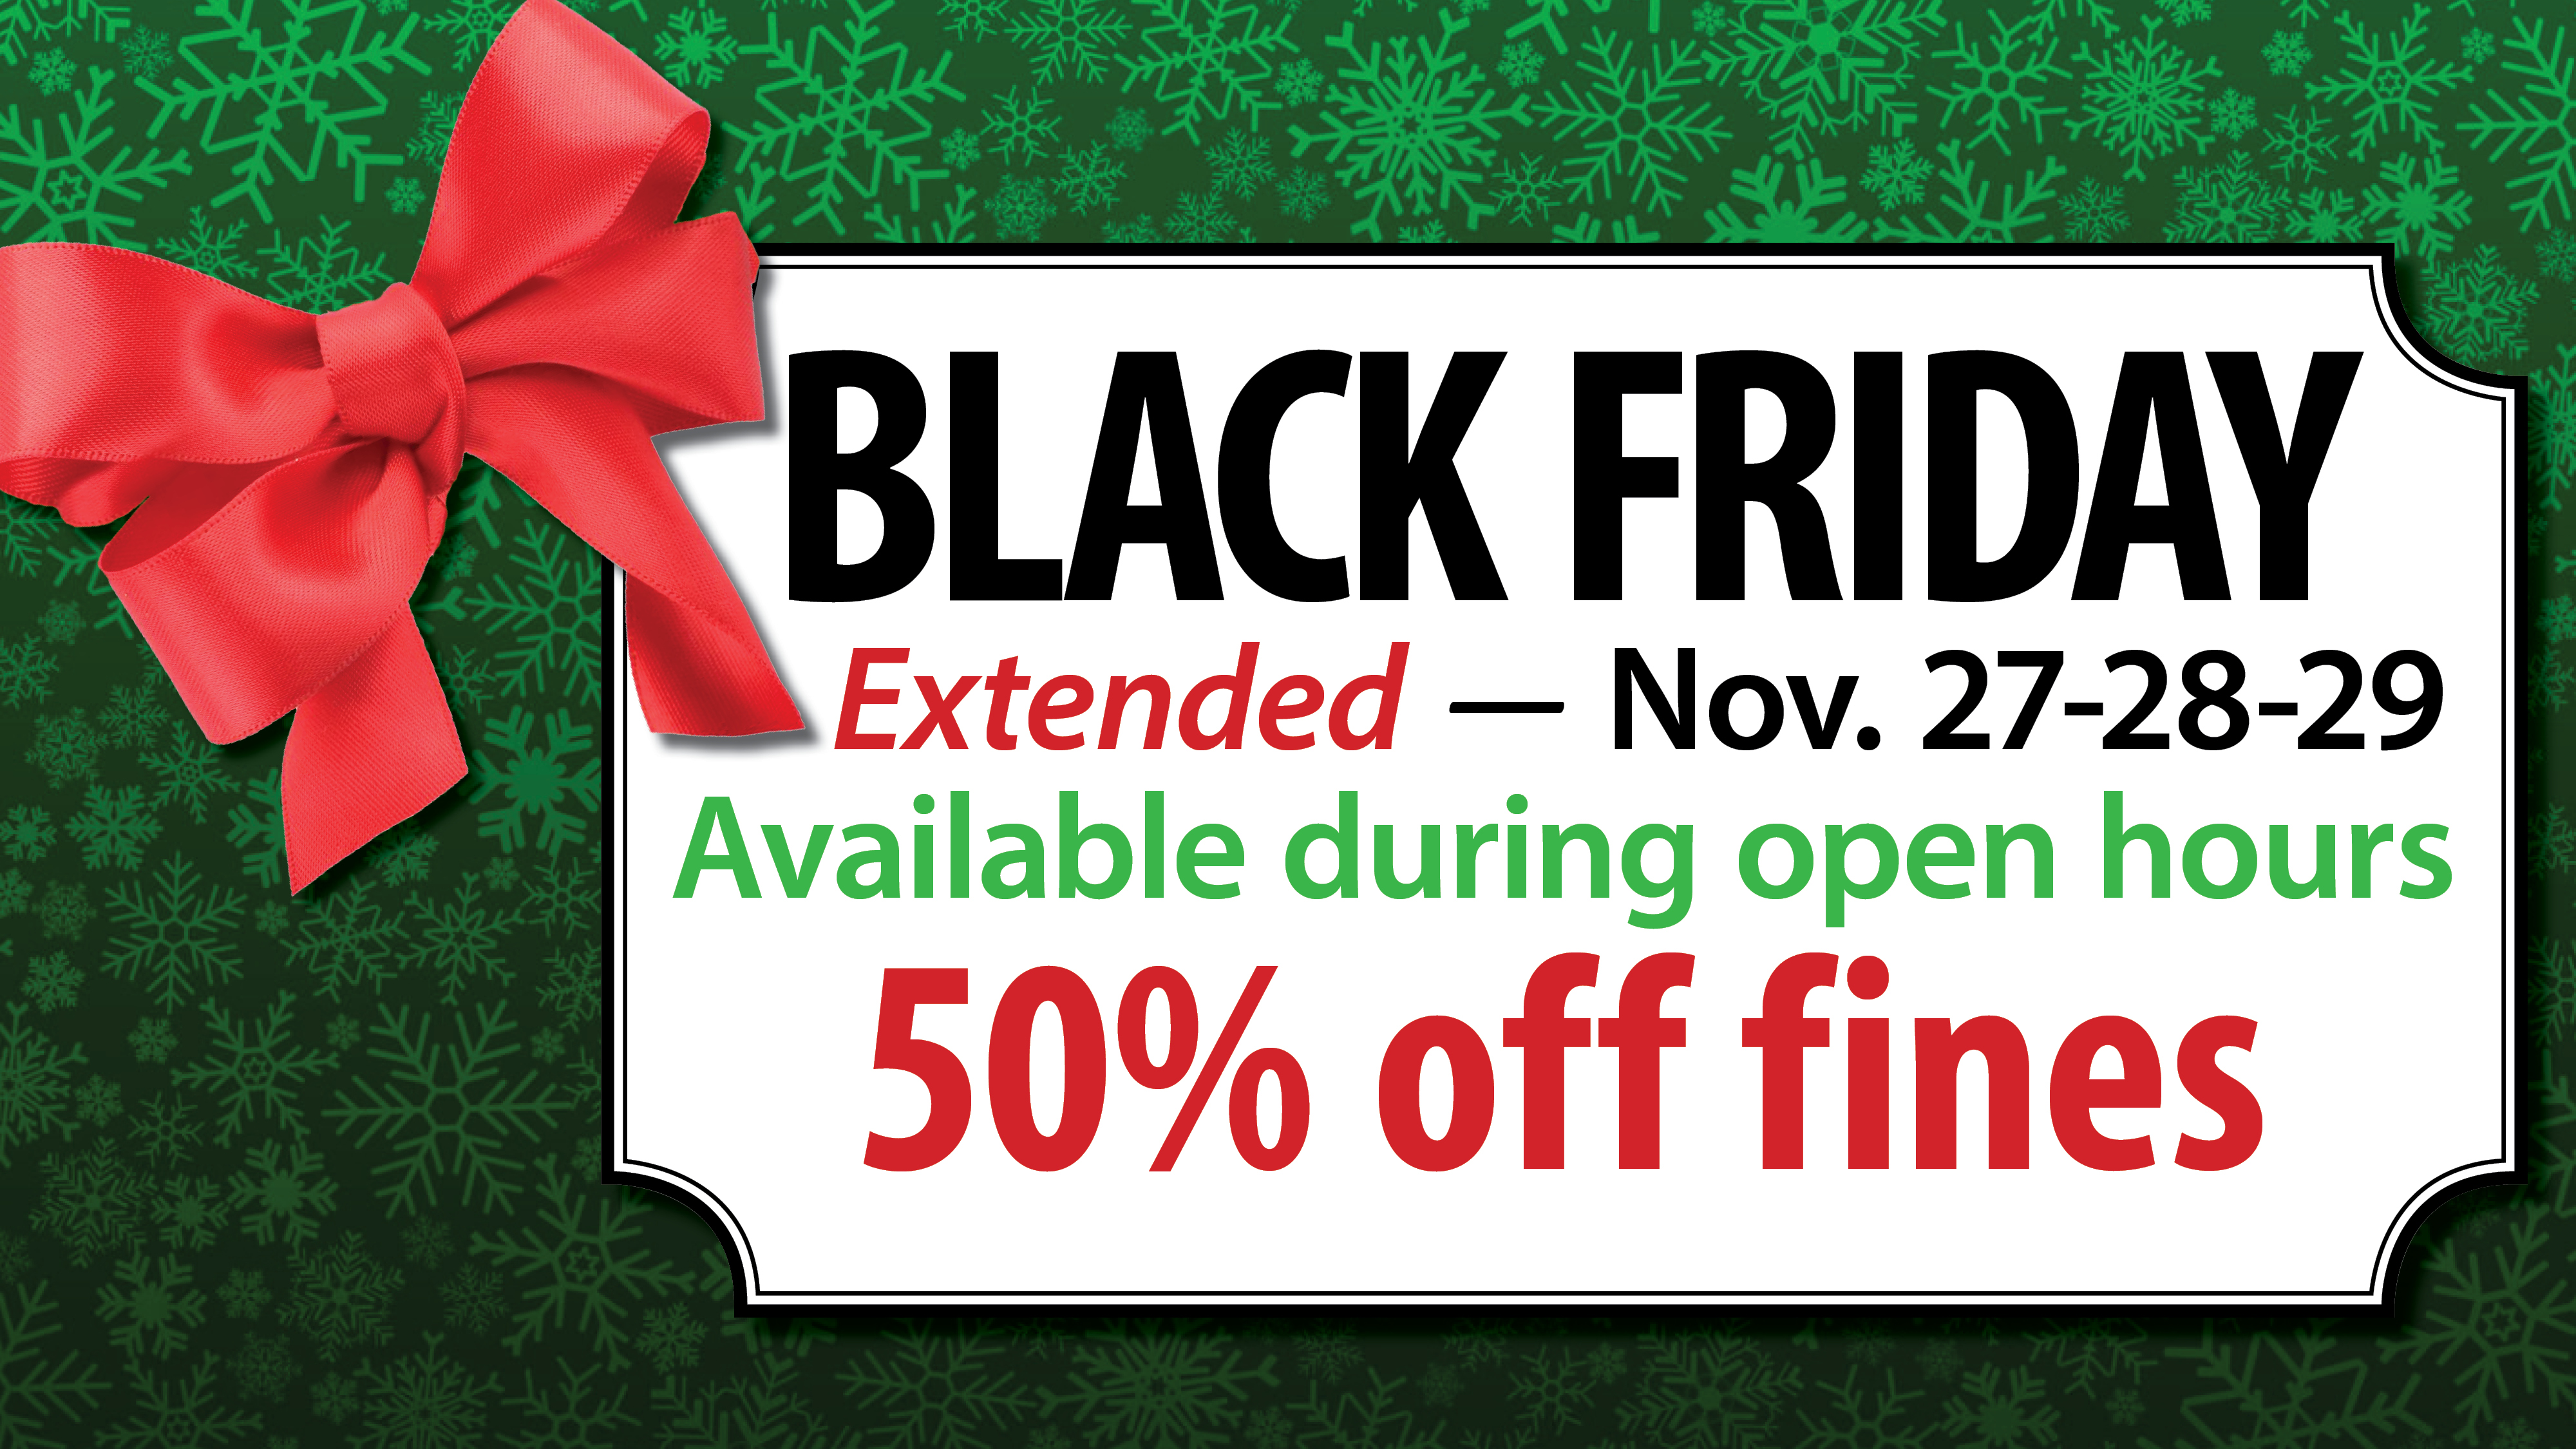 Black Friday sale extended all weekend